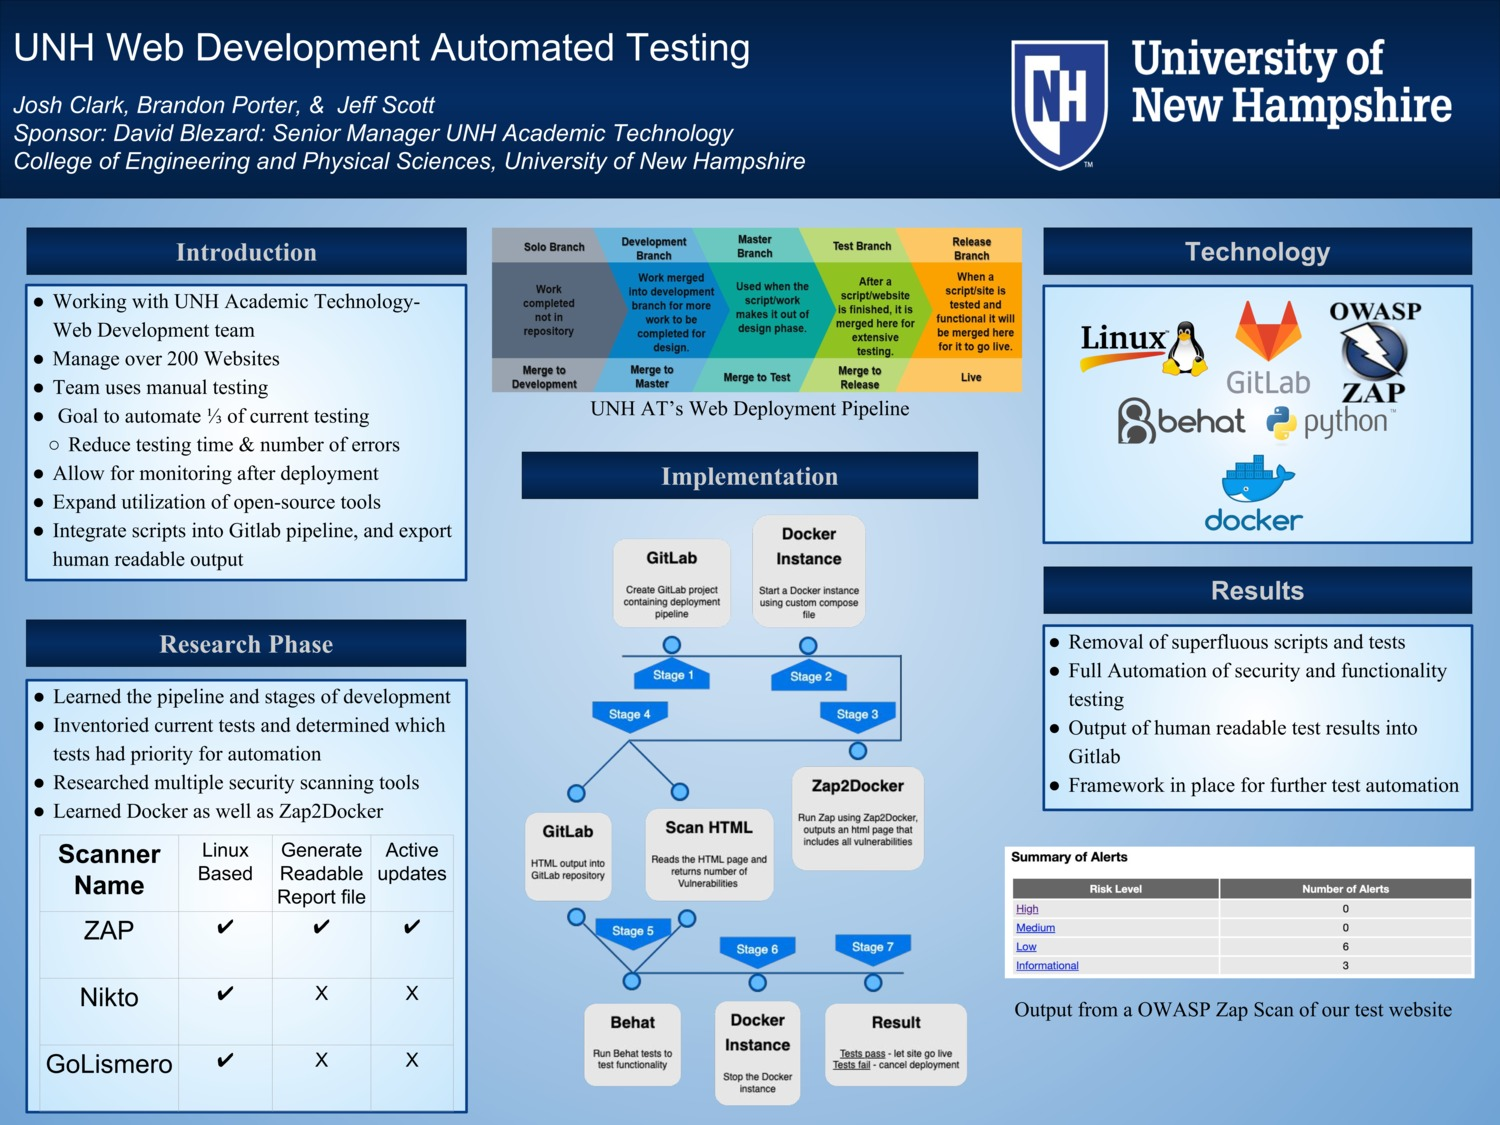 Unh Web Development Urc by jmc1041